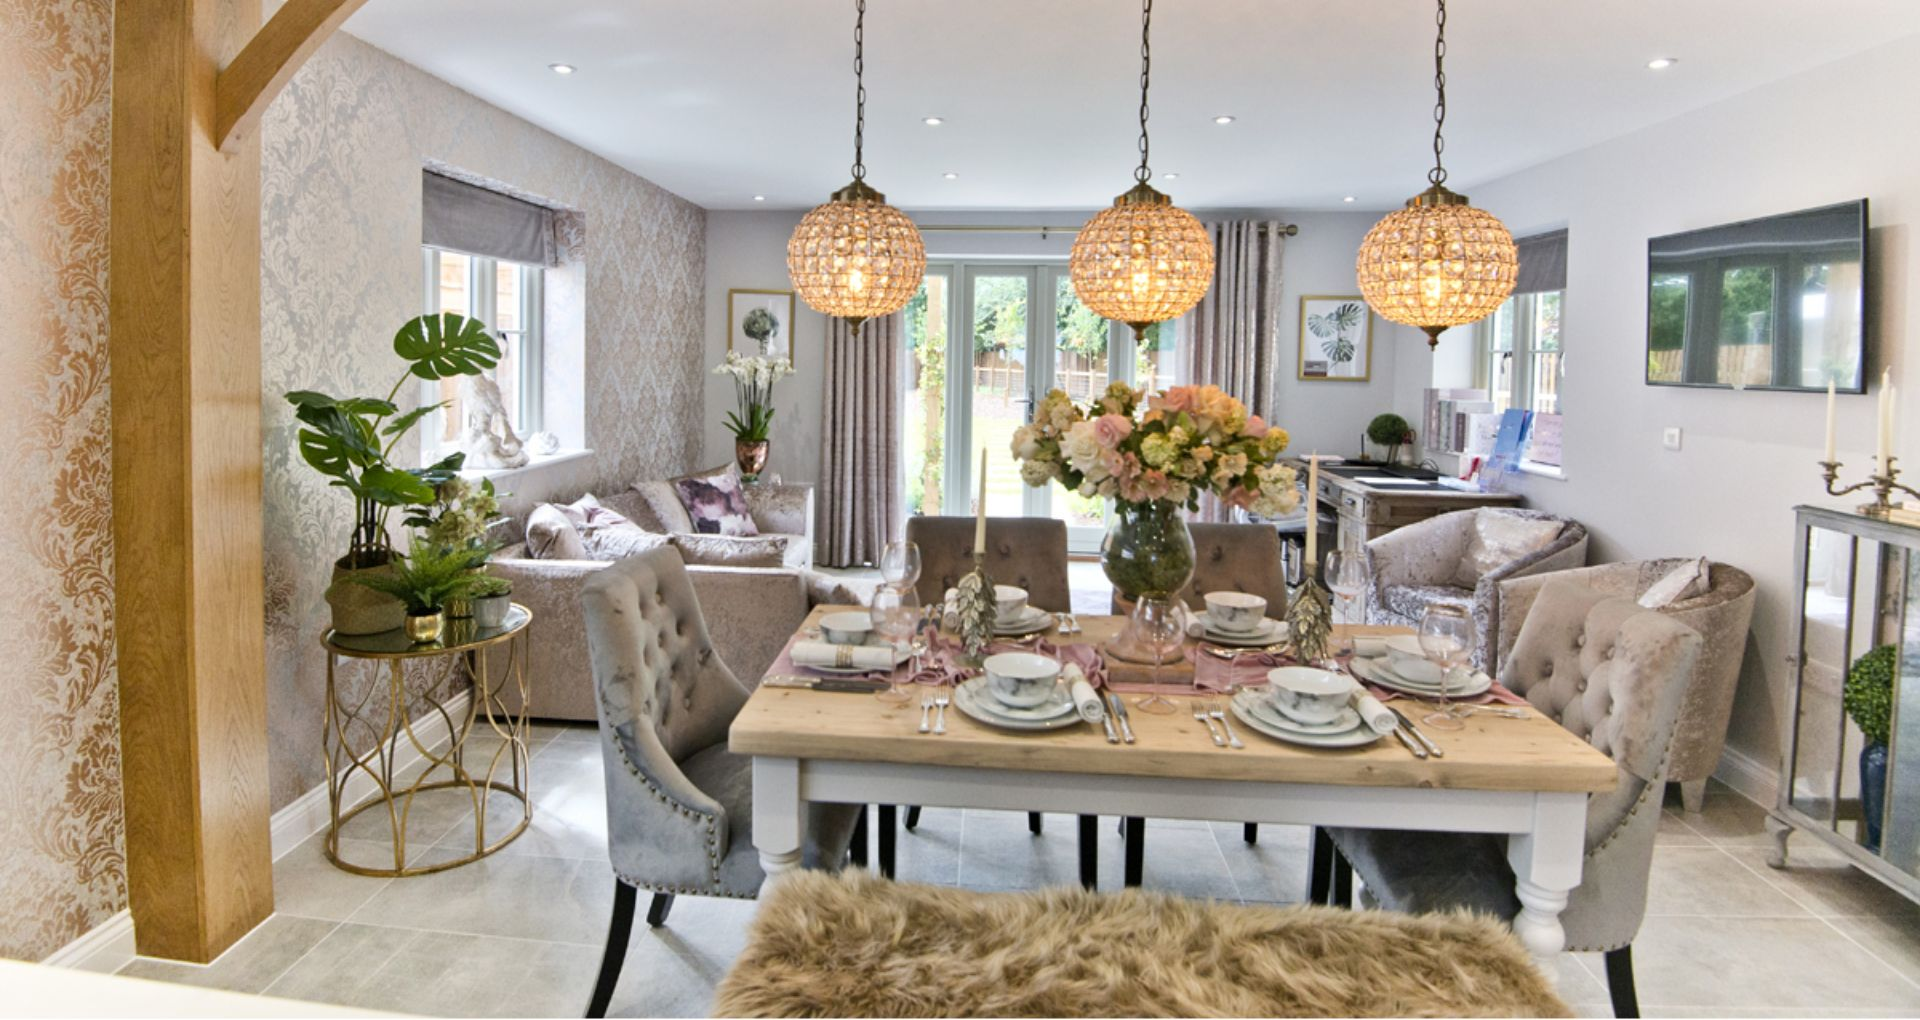 Bright living room with french doors at the back leading into the garden